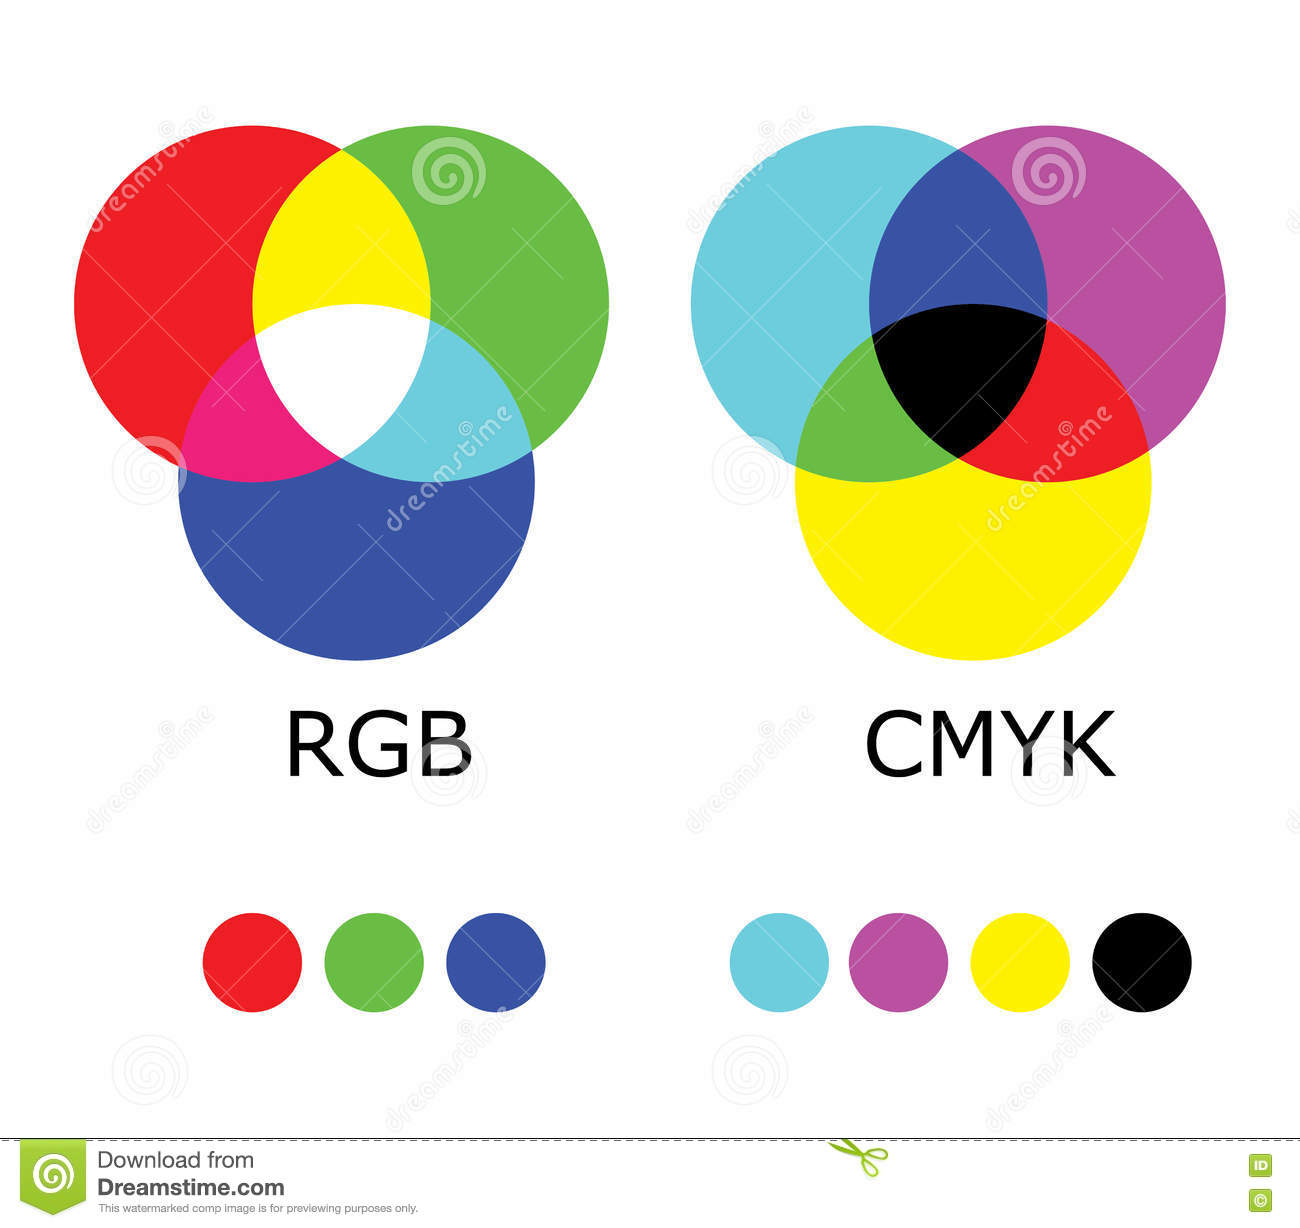 RGB And CMYK Color Diagram Stock Vector - Image: 82255347